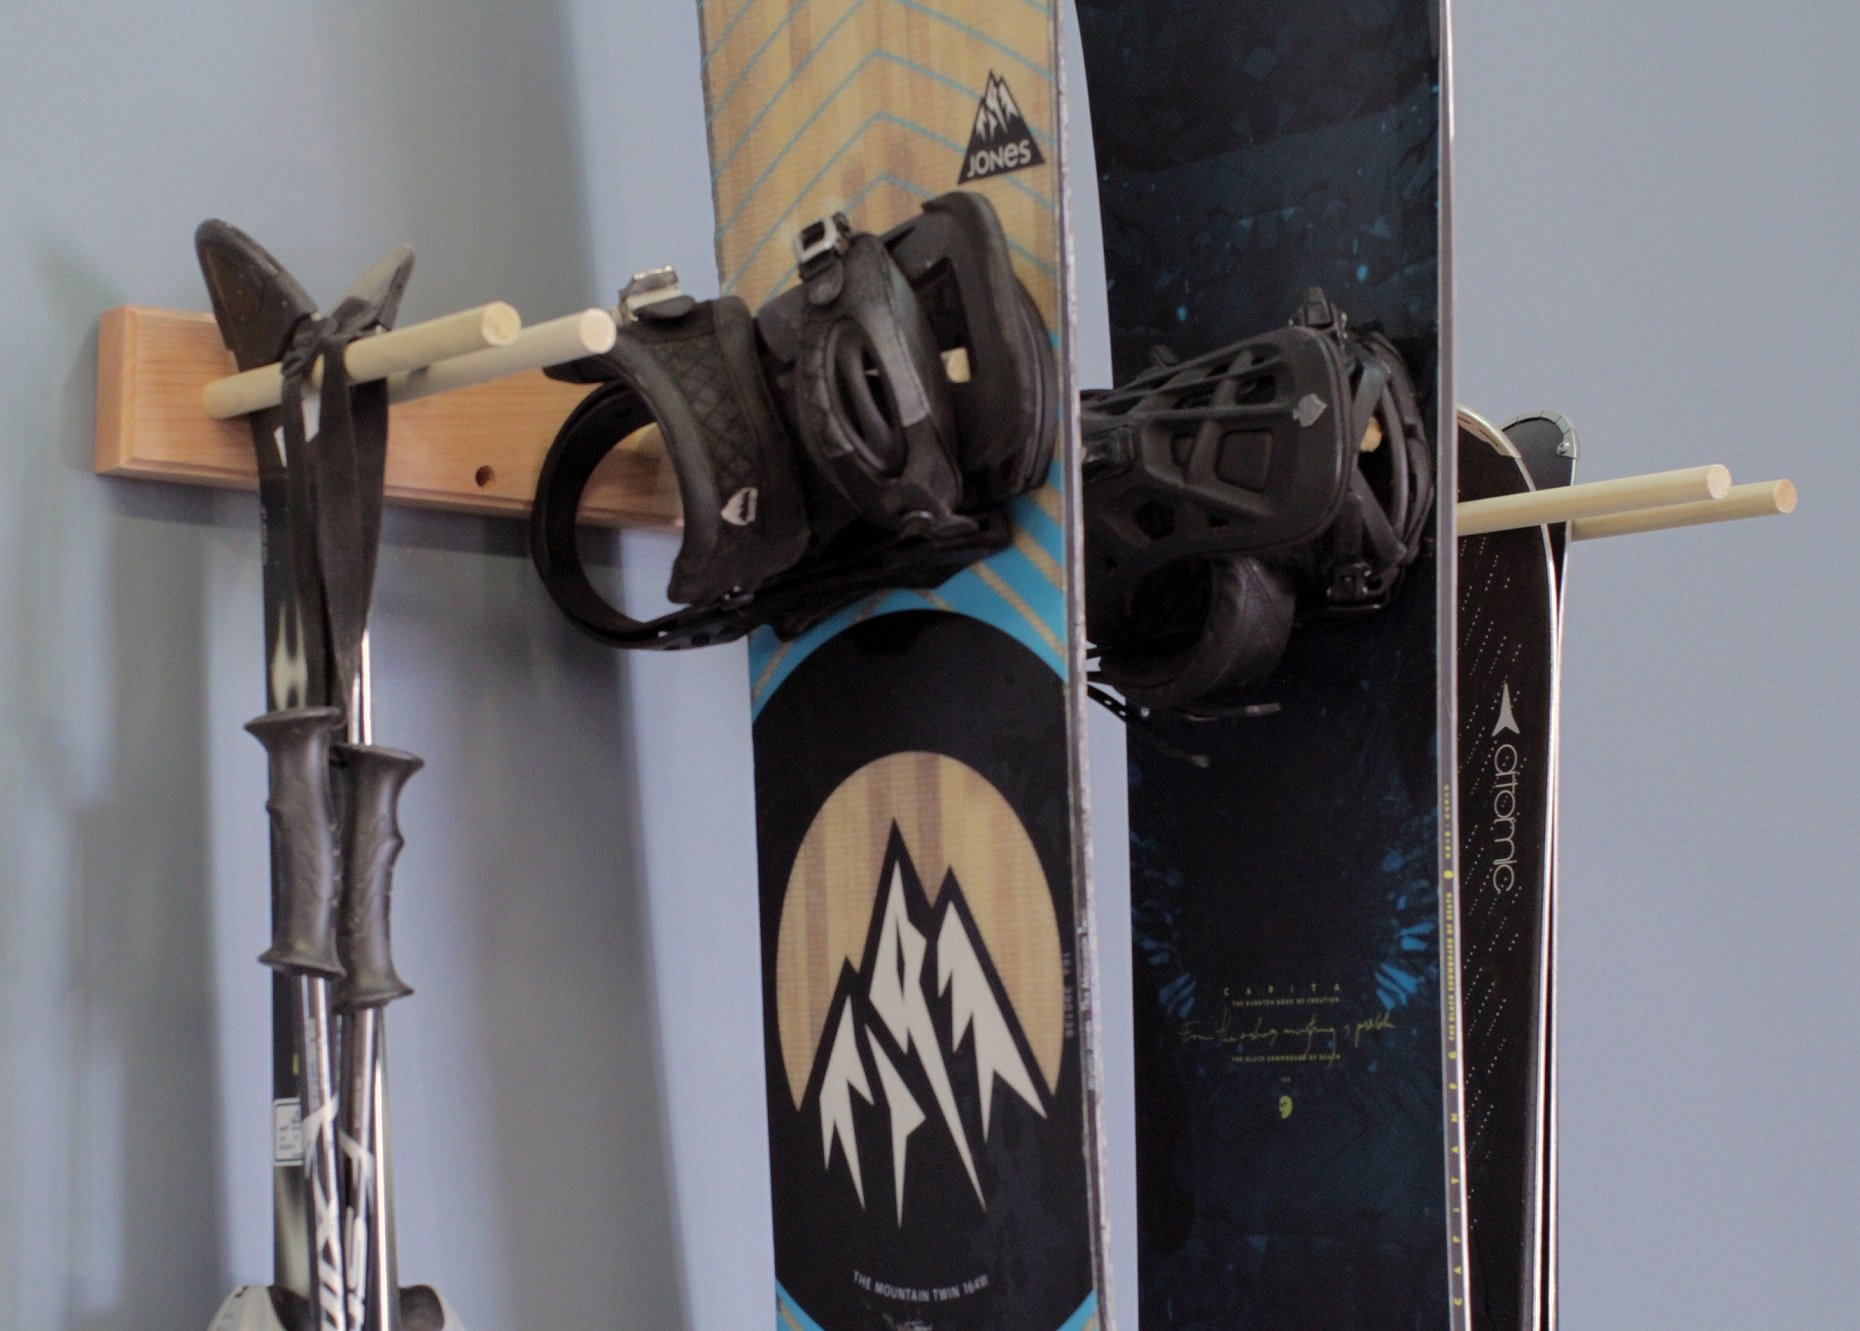 Snowboard Ski Wall Mounted Storage Rack by Pro Board Racks